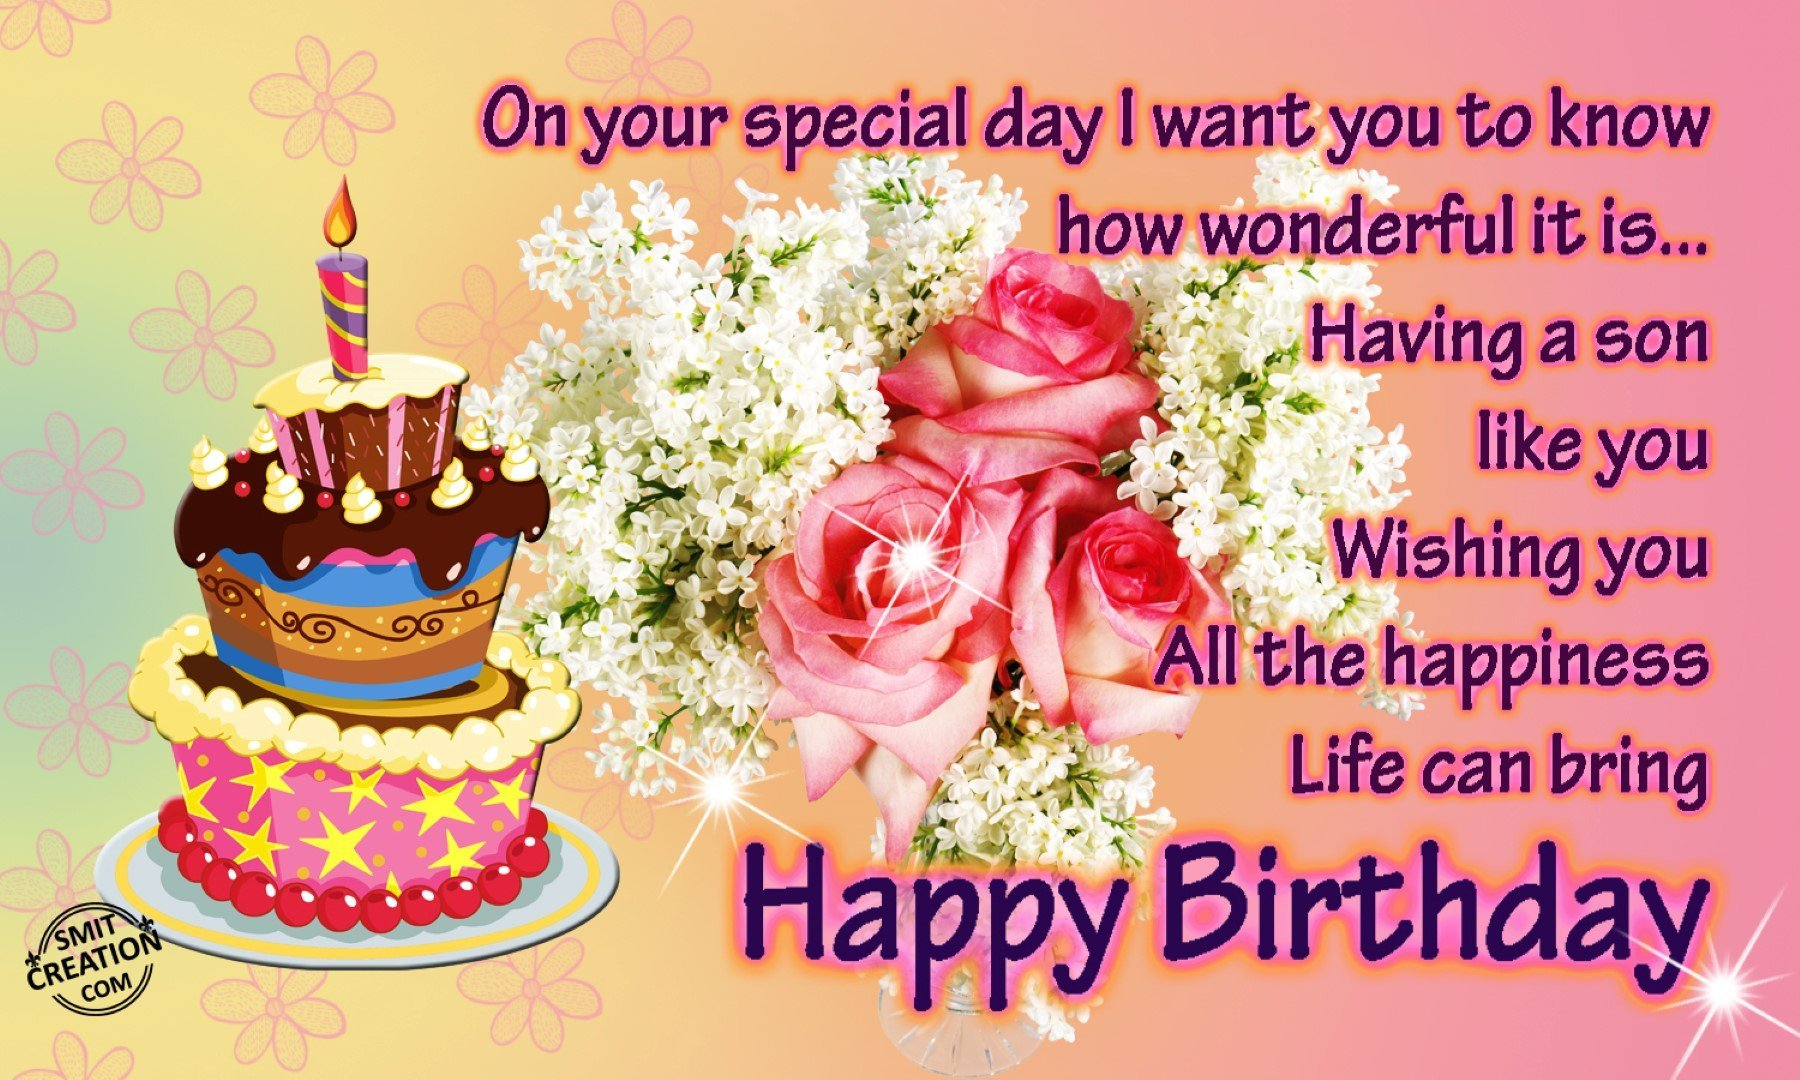 Birthday Wishes For Son Pictures And Graphics Smitcreation